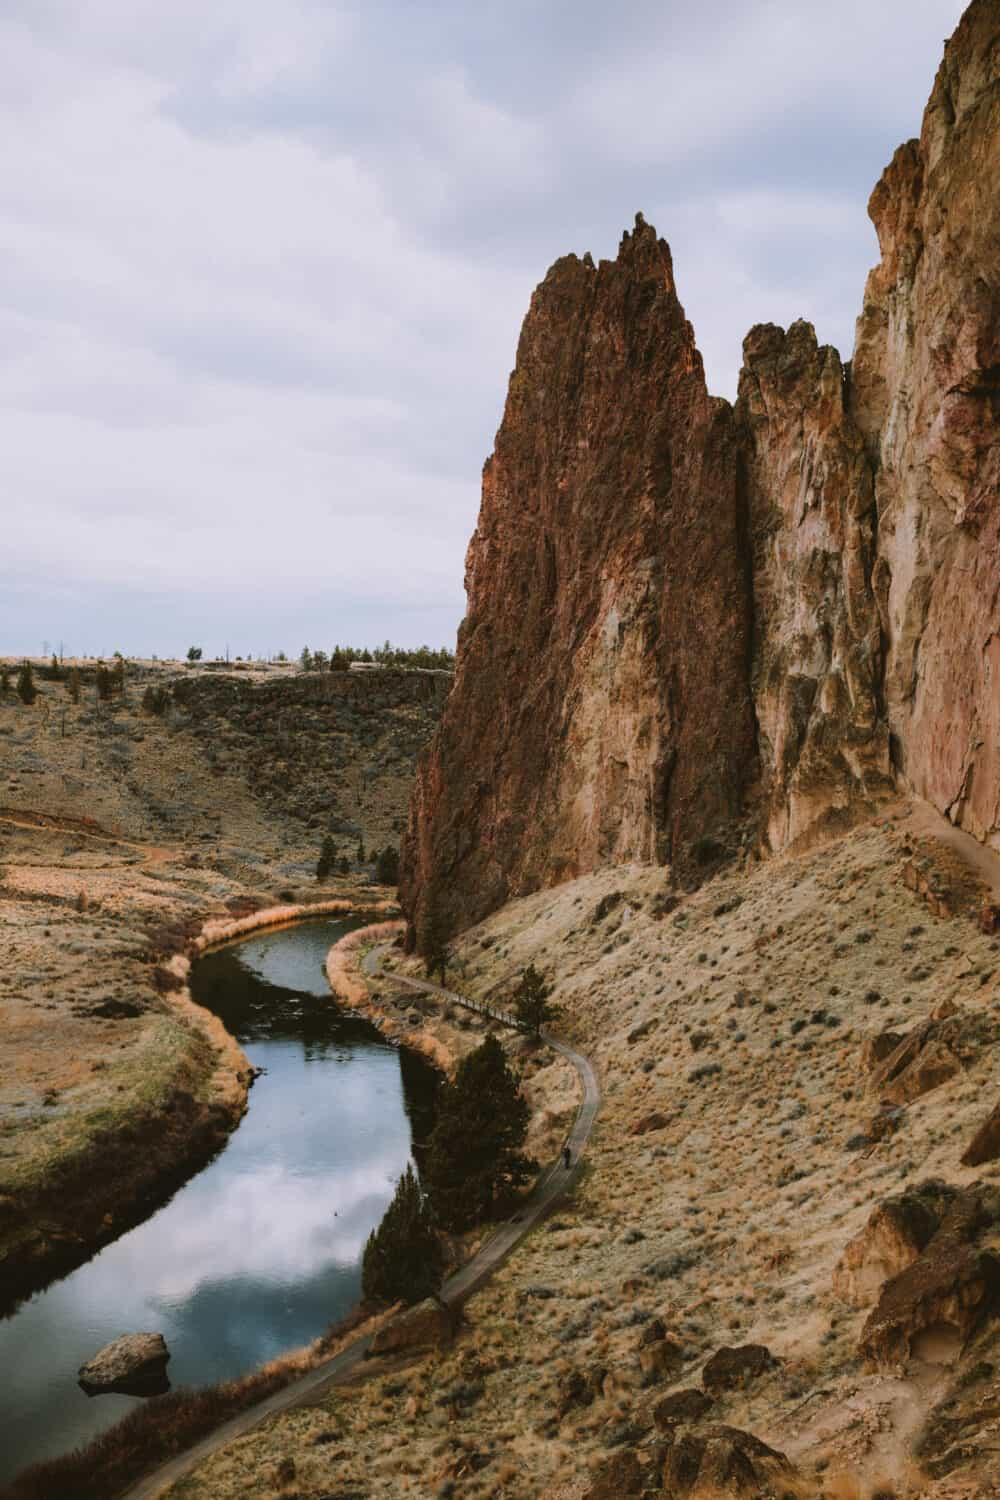 Day Trips From Portland To Smith Rock State Park